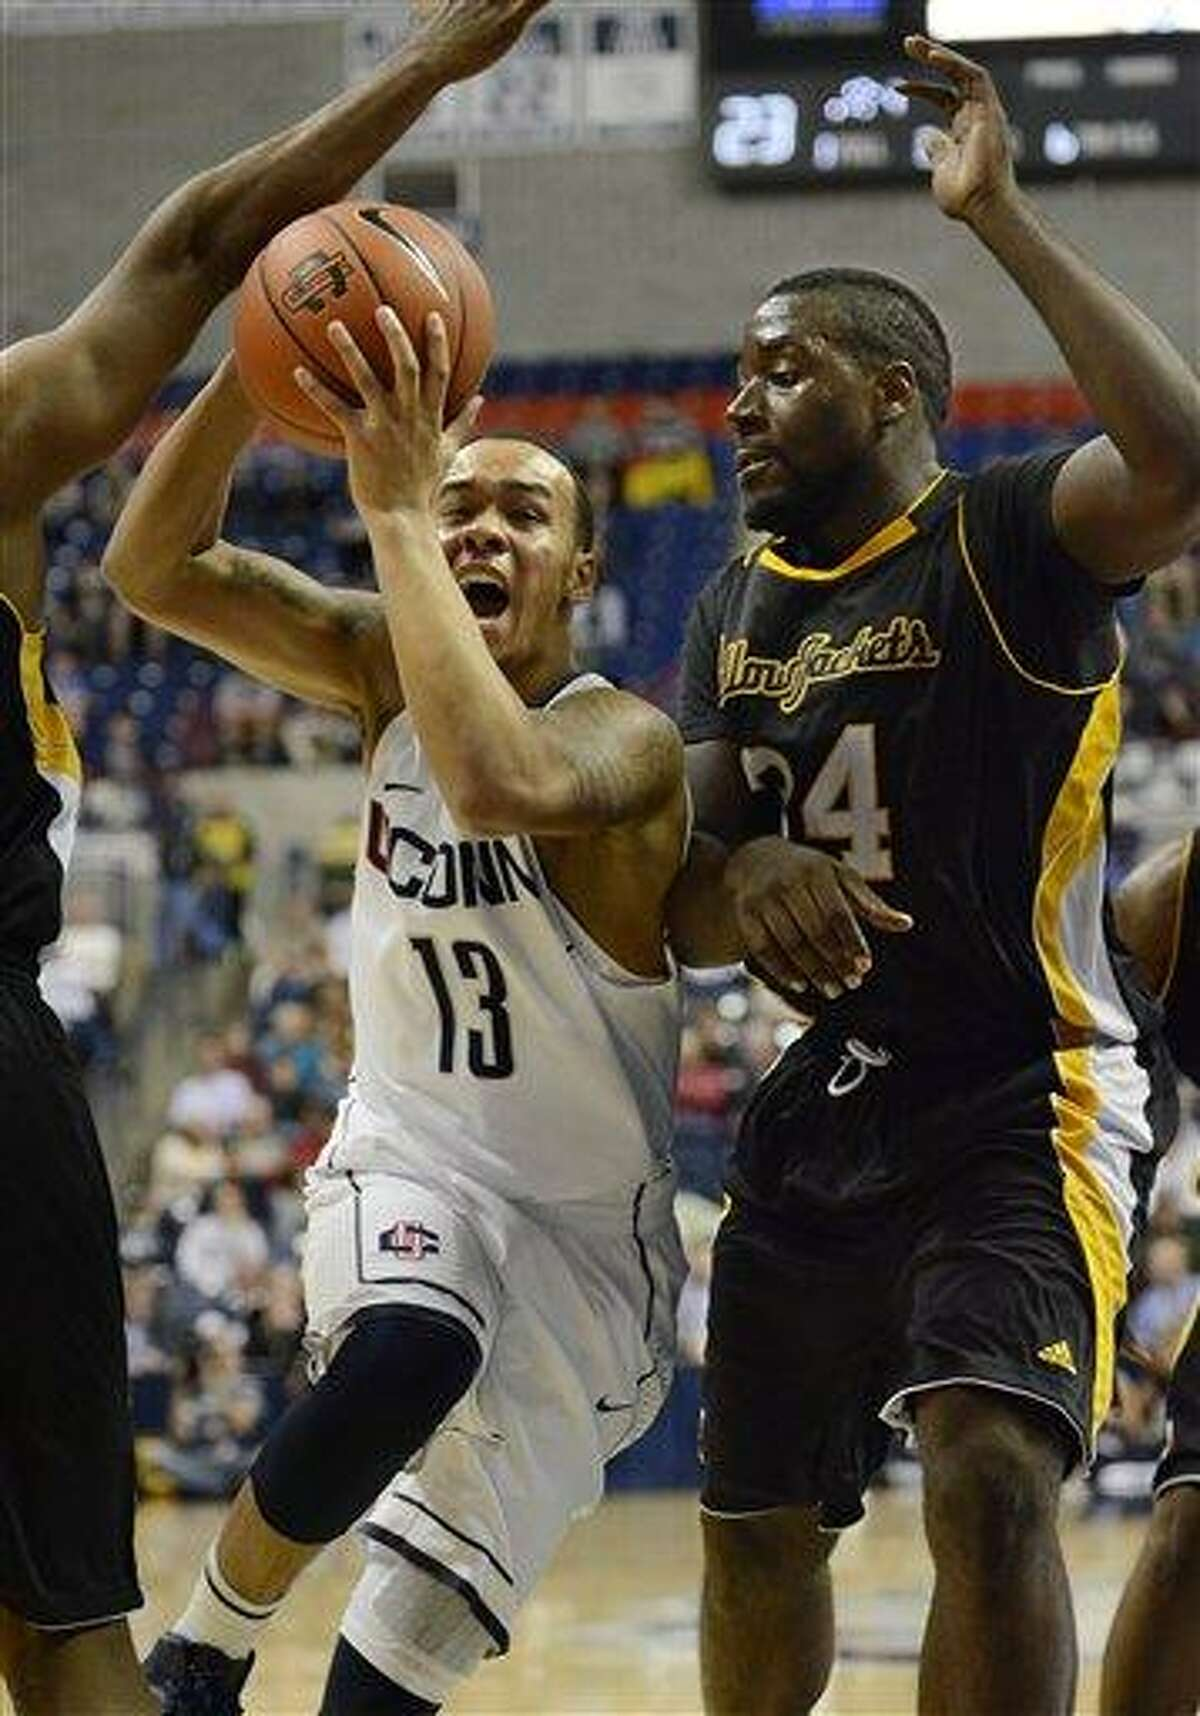 Connecticut Shabazz Napier (13) drives to the basket while guarded by American International College's David Campbell (34) during the first half of a men's NCAA basketball game in Storrs, Conn., Thursday, Nov. 1, 2012. (AP Photo/Jessica Hill)